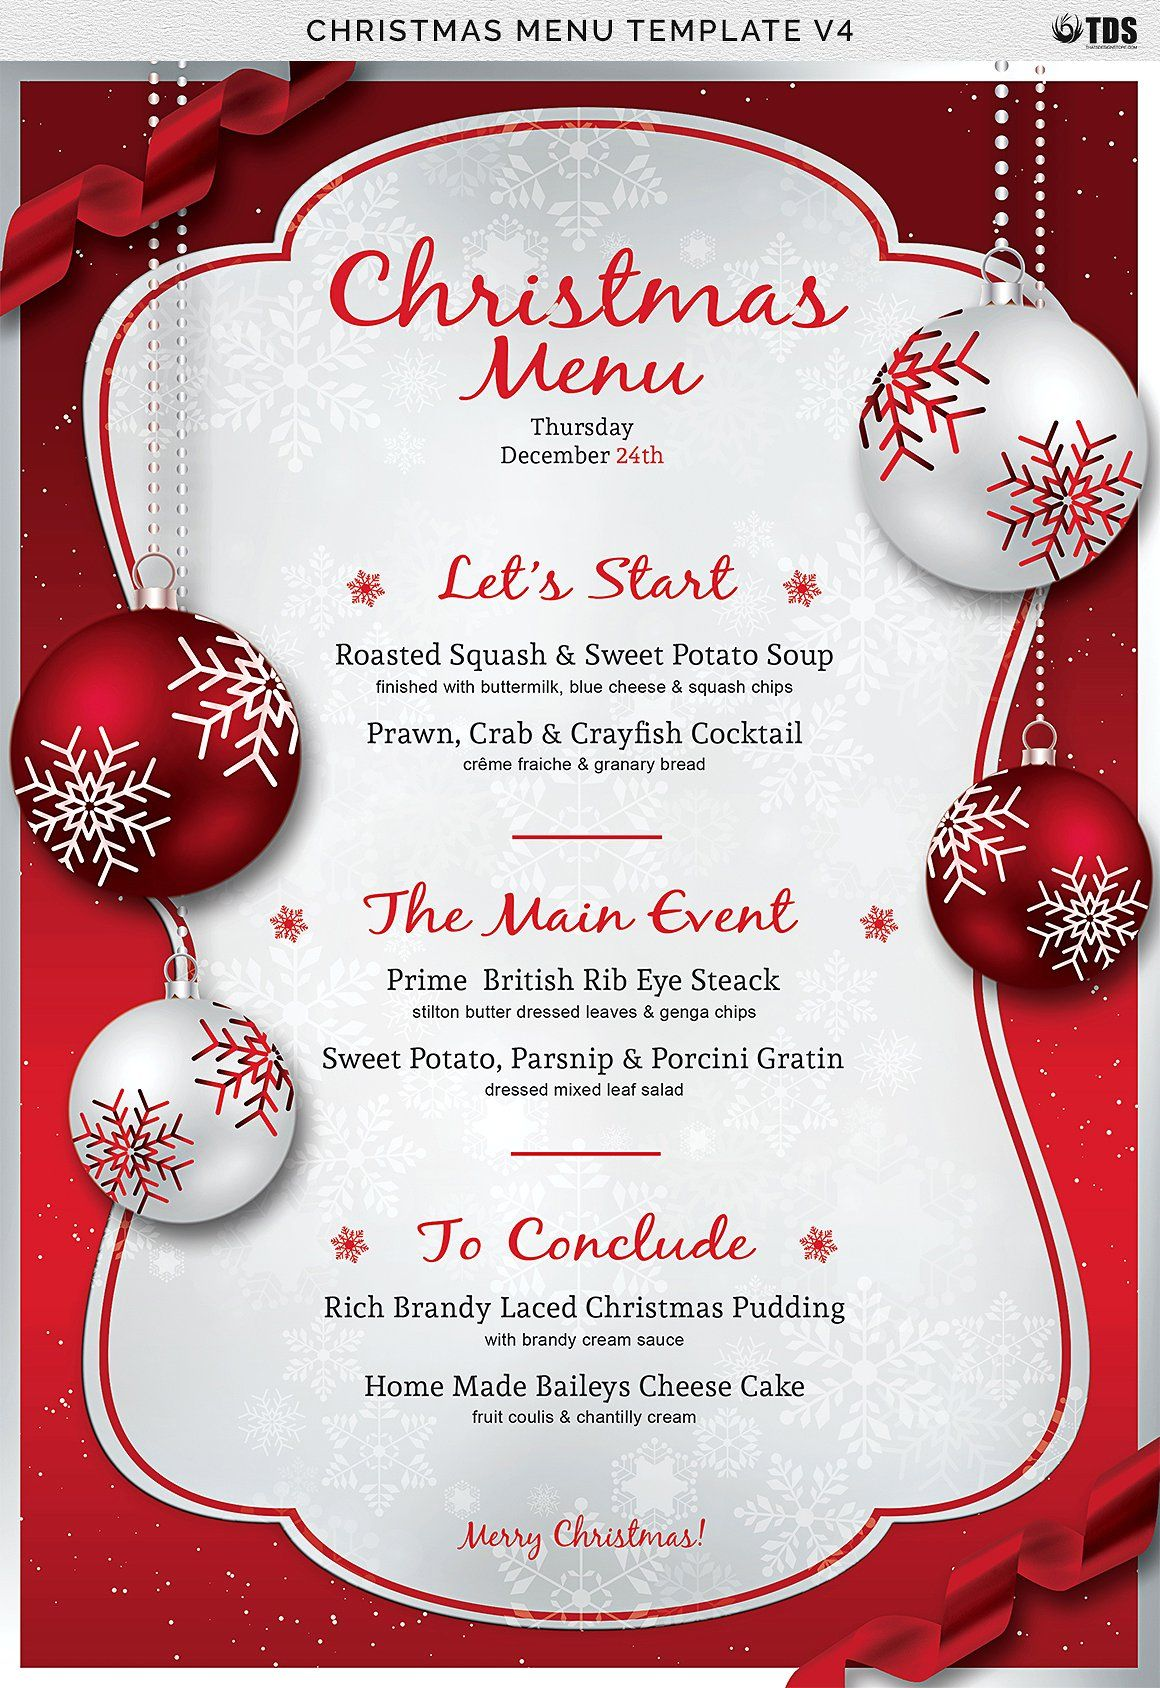 Christmas Menu Template V4 SizecmPSDPhotoshop